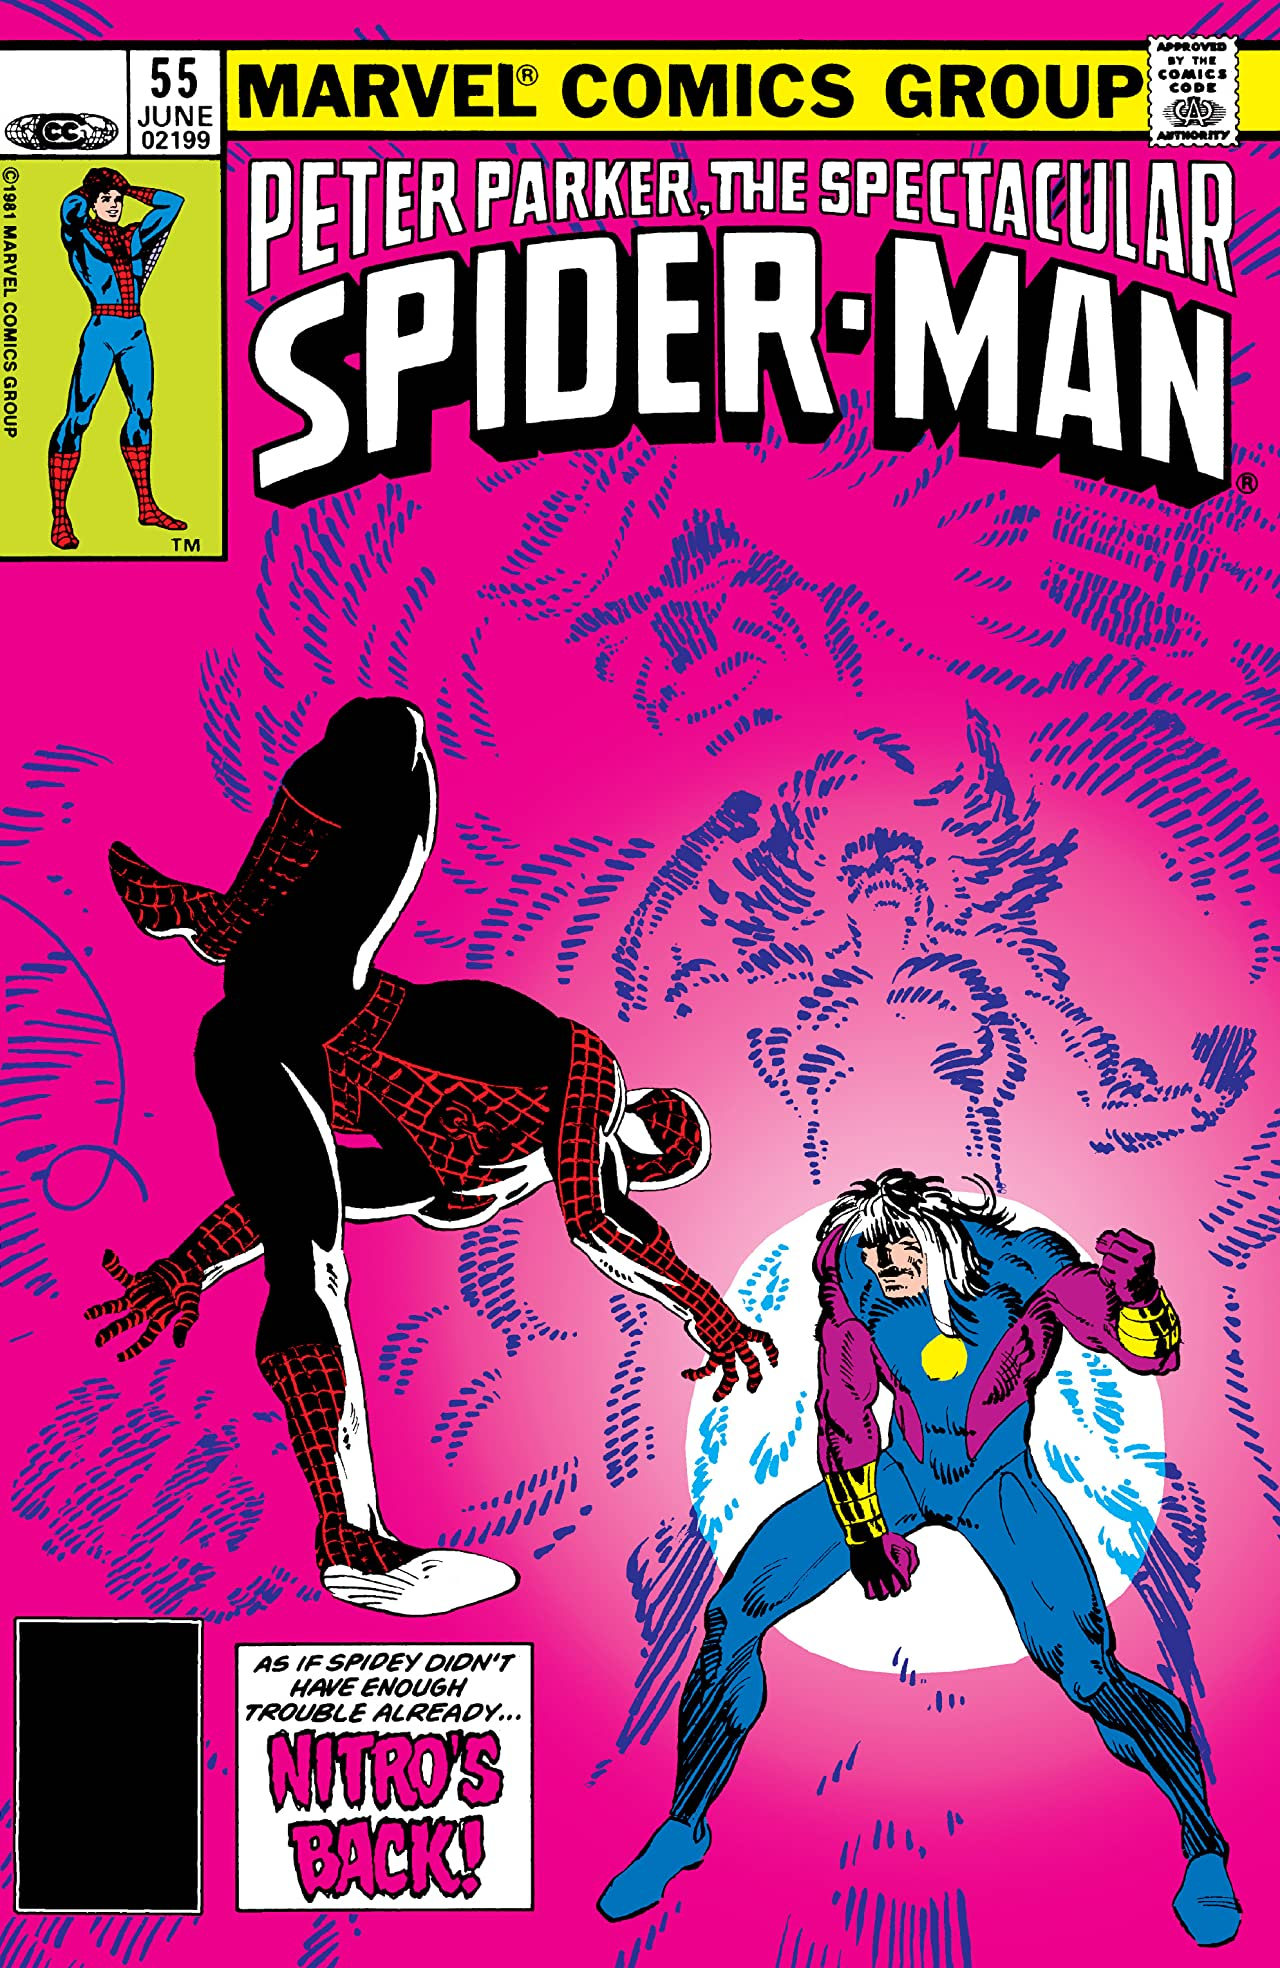 Peter Parker, The Spectacular Spider-Man (1976-1998) #55